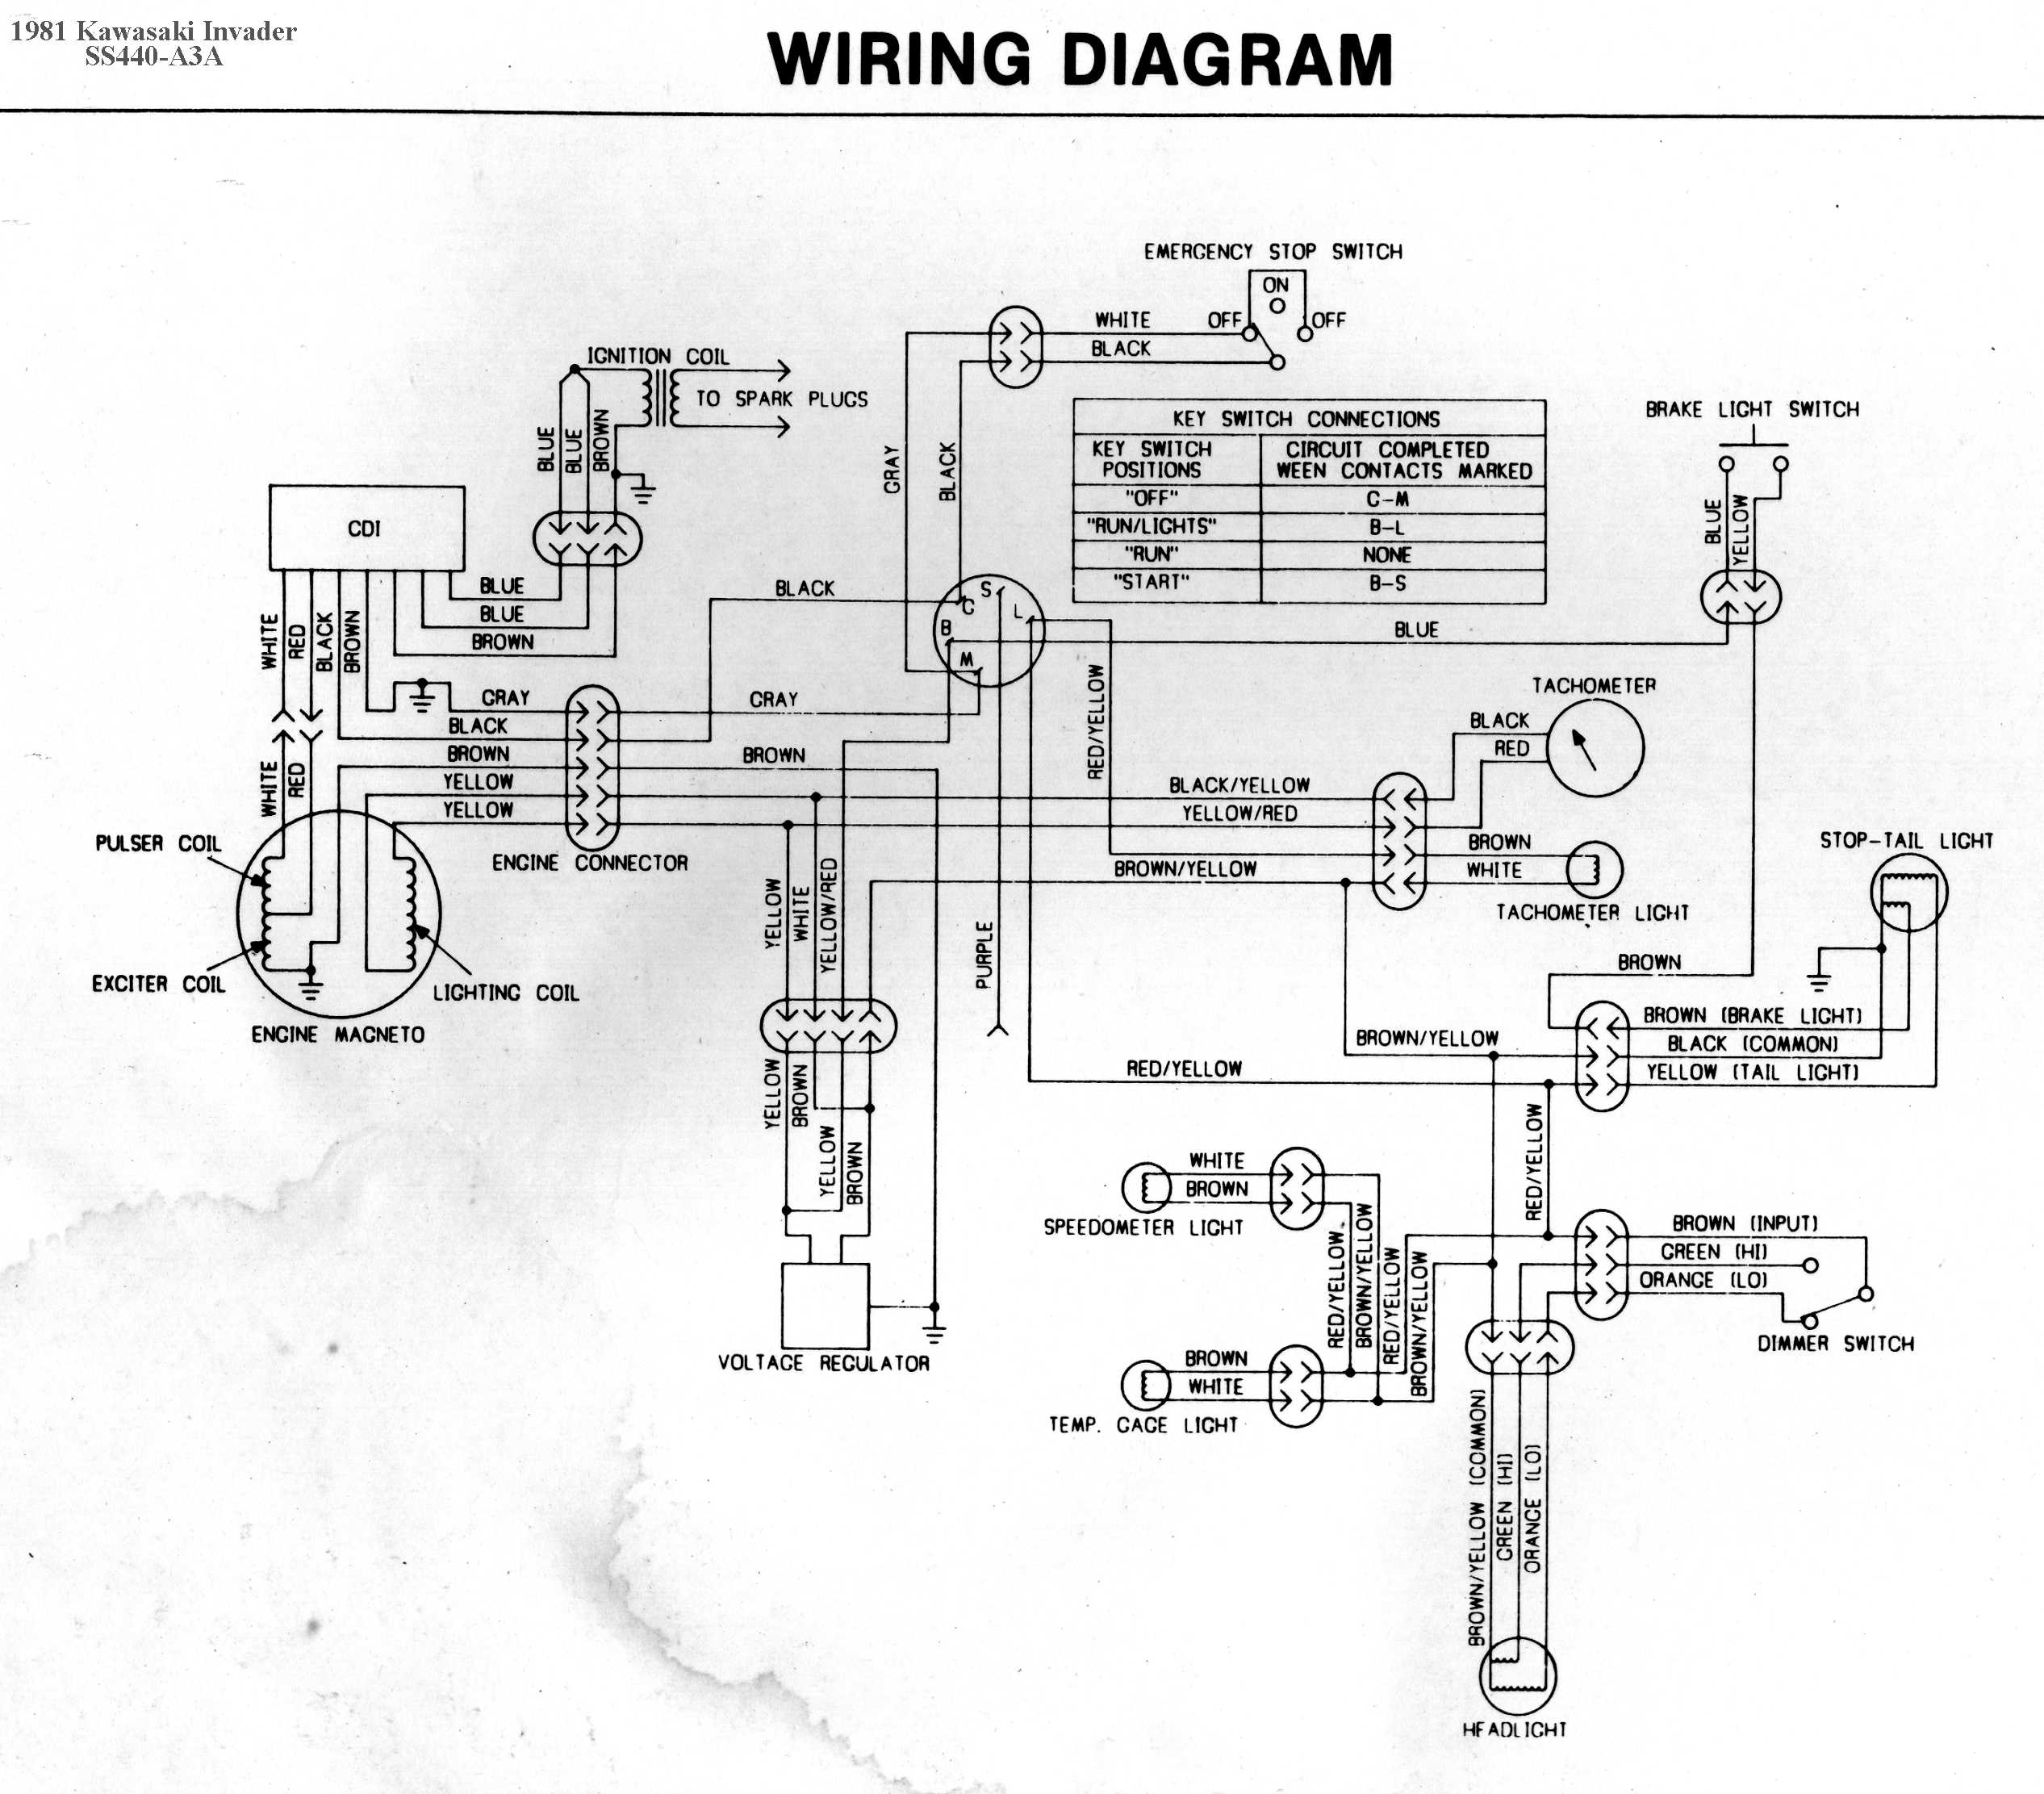 2010 Polaris Rmk 600 Wiring Diagram Quick Start Guide Of Lx Library Rh 30 Akszer Eu 2004